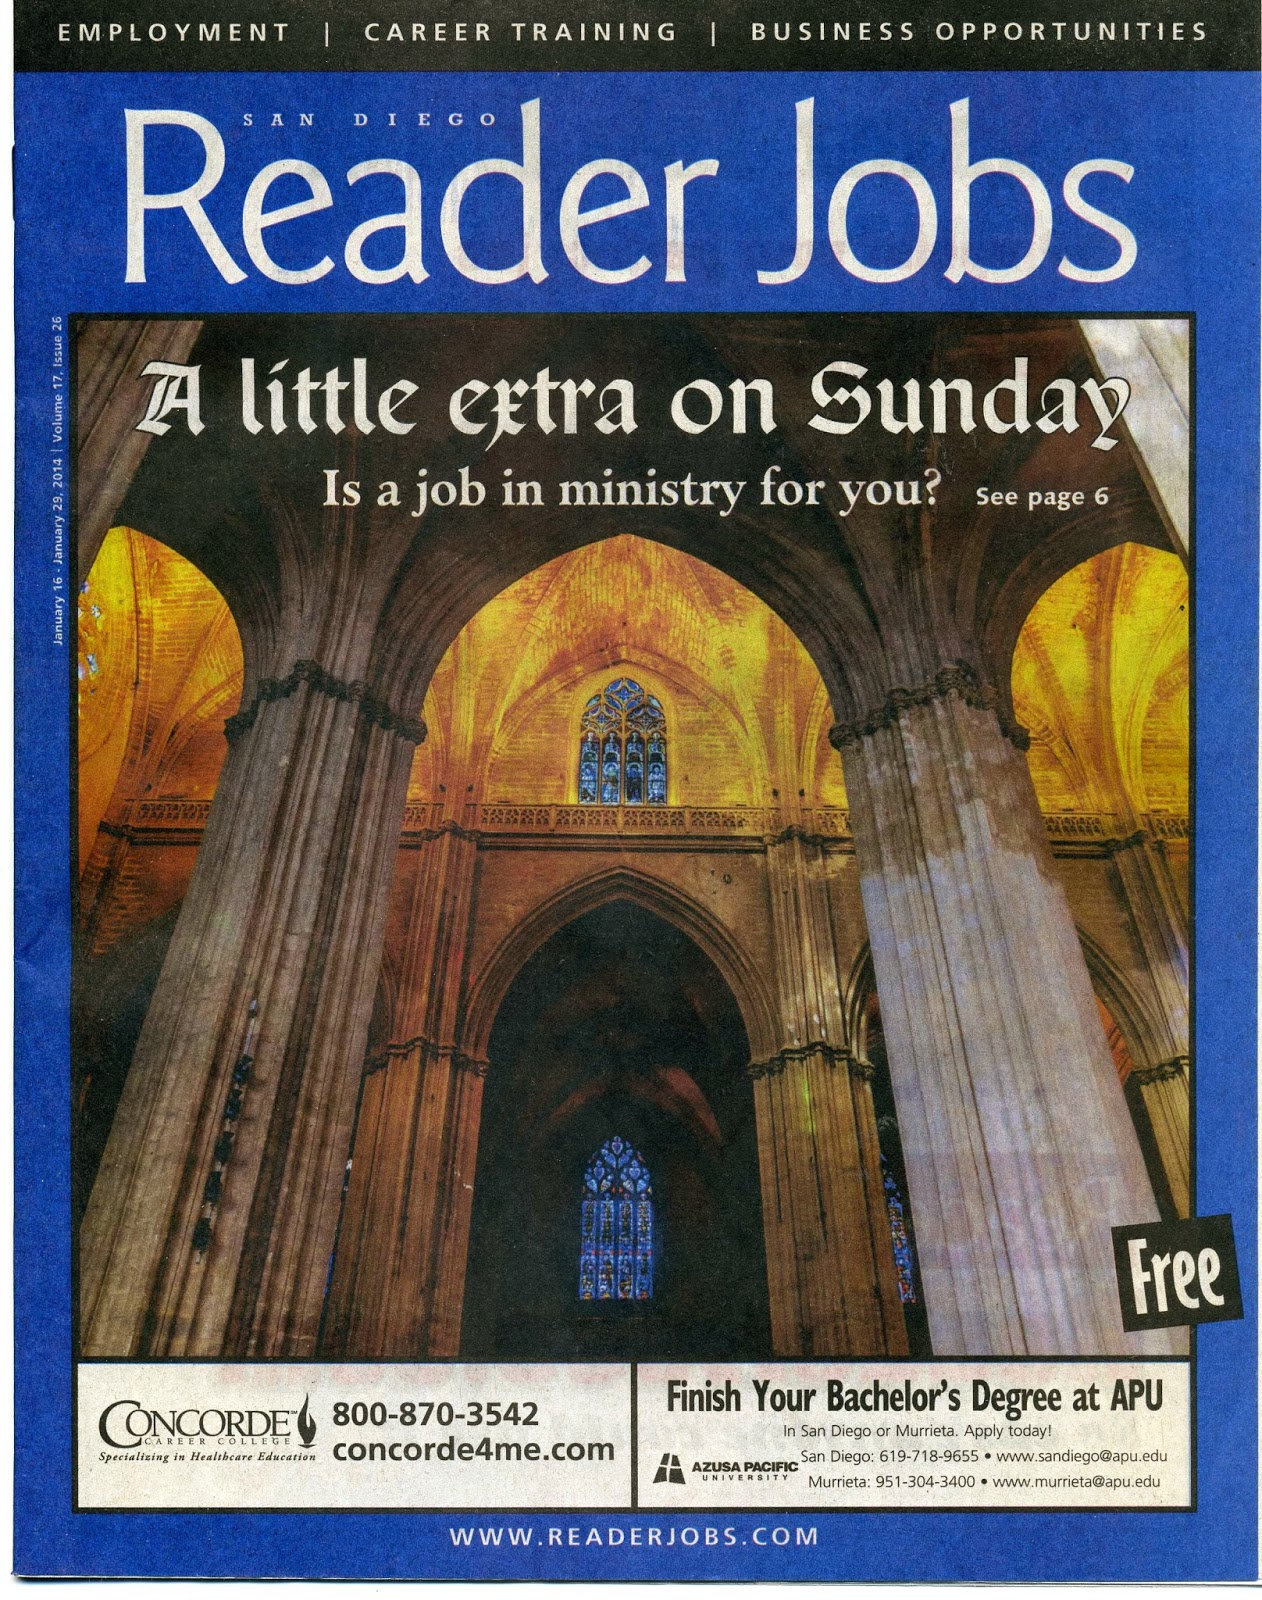 http://www.sandiegoreader.com/news/2014/jan/16/jobs-little-extra-sunday/